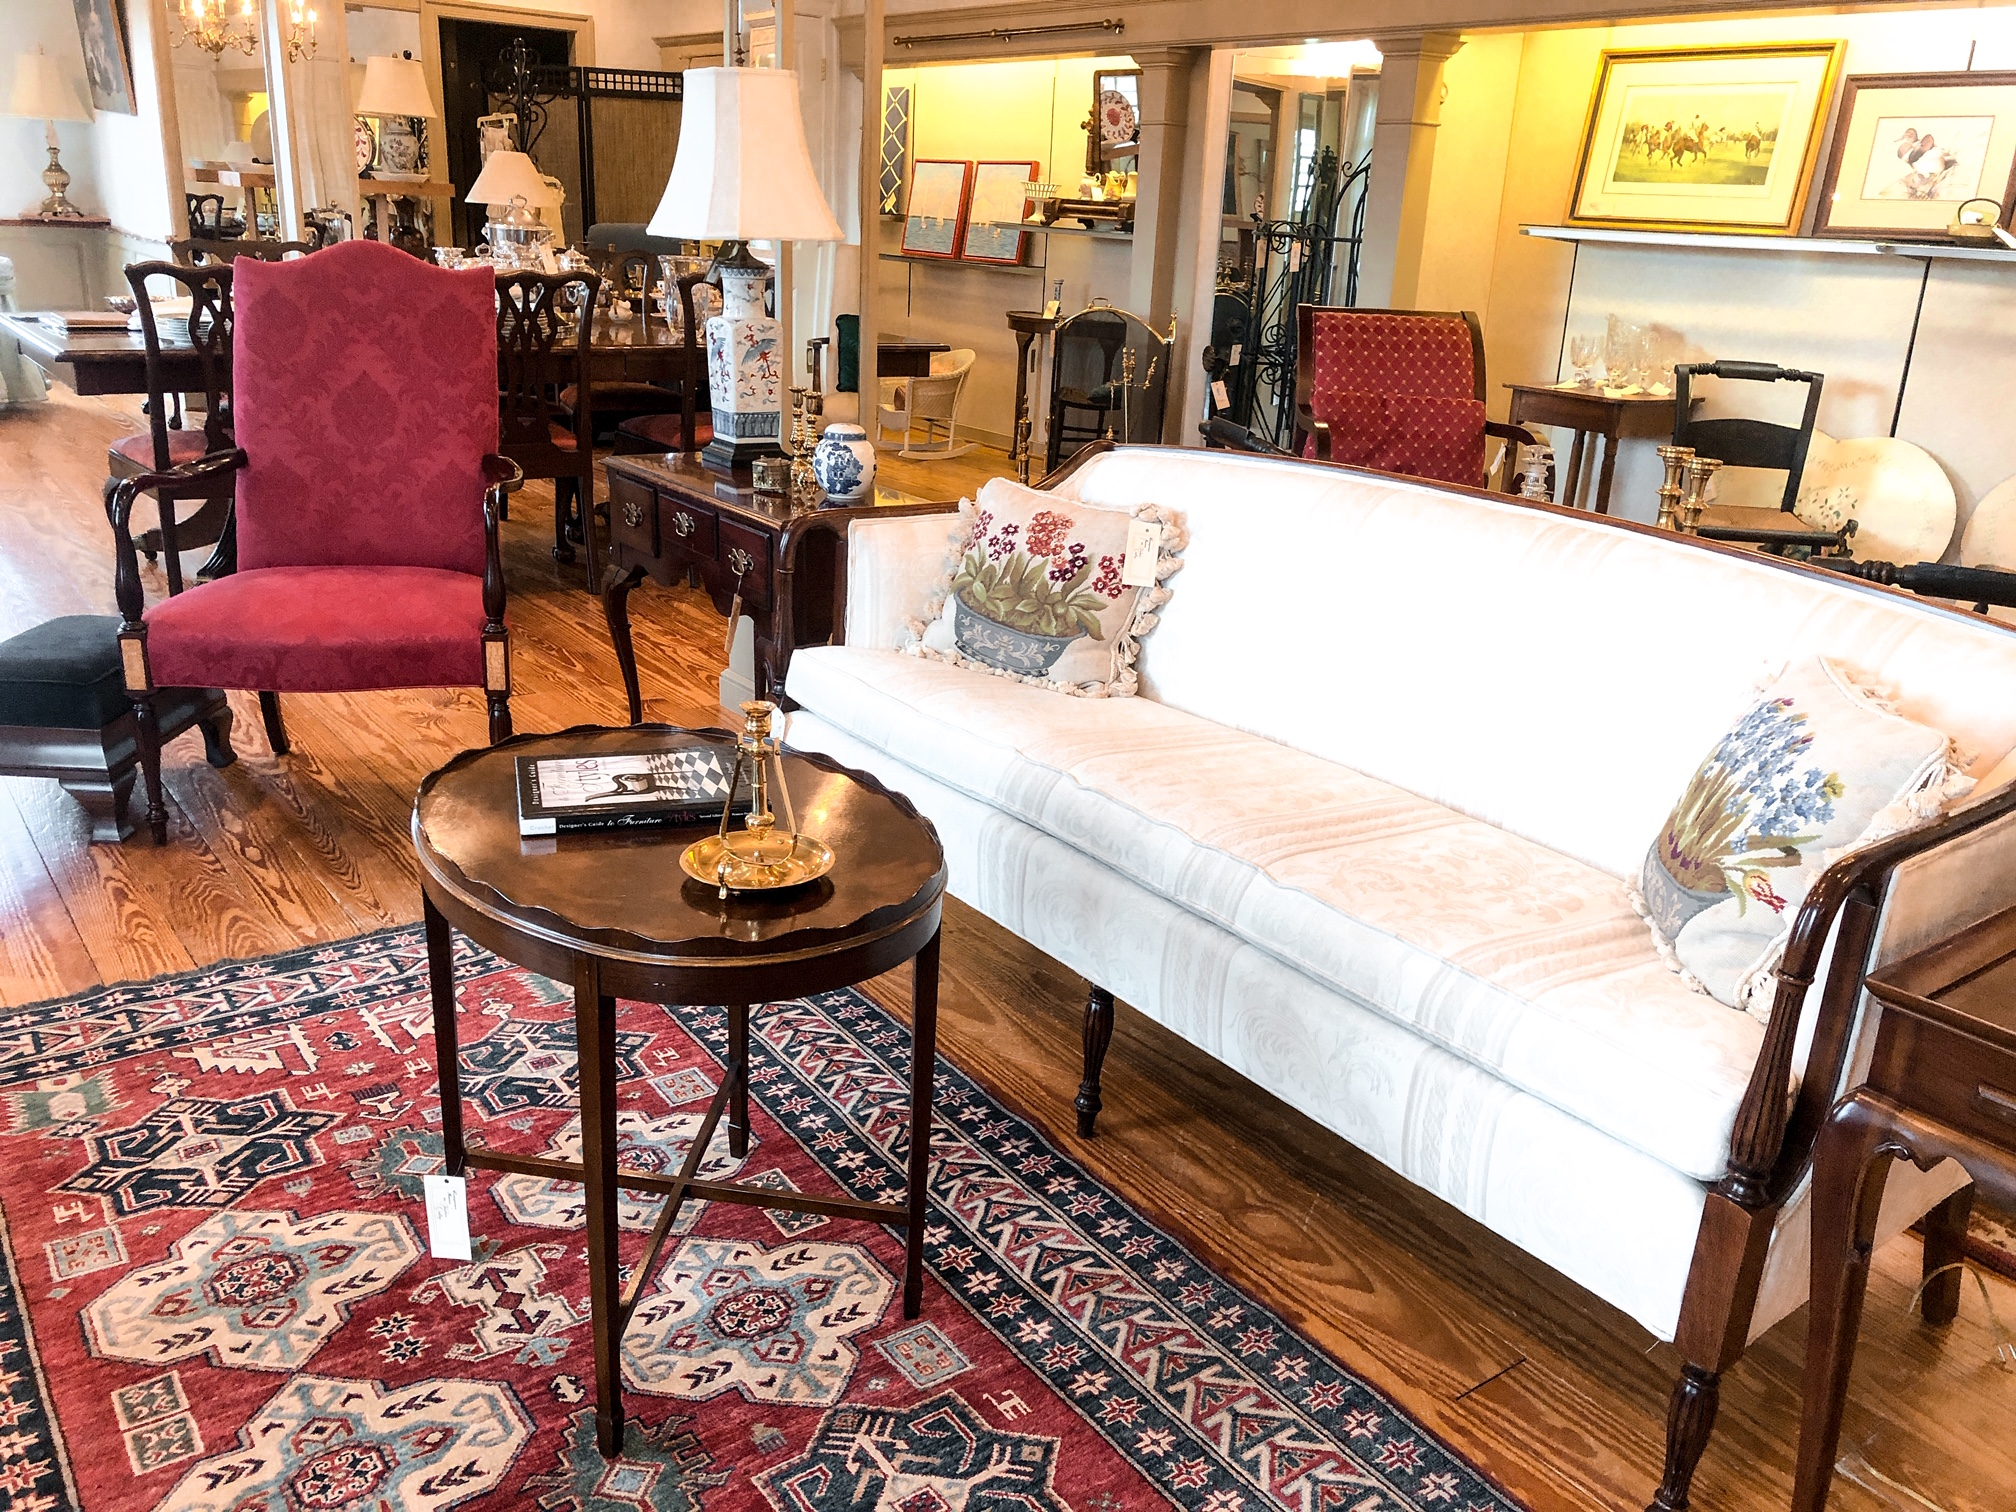 High end consignment of interior homewares and antiques.